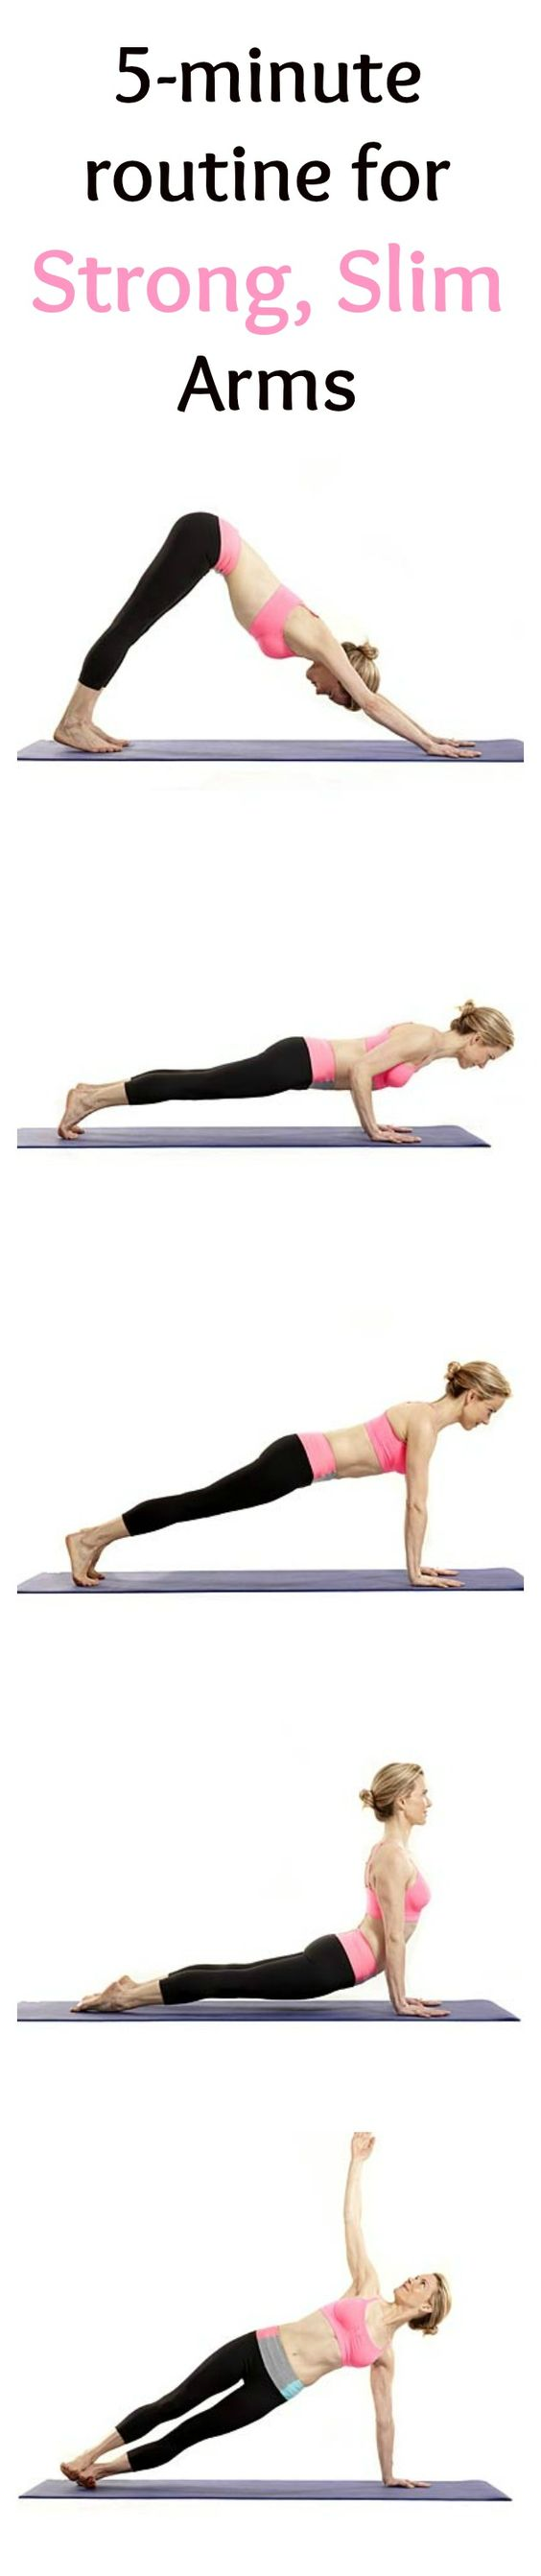 images The 5-Minute Abs Workout (With Exercise Descriptions)